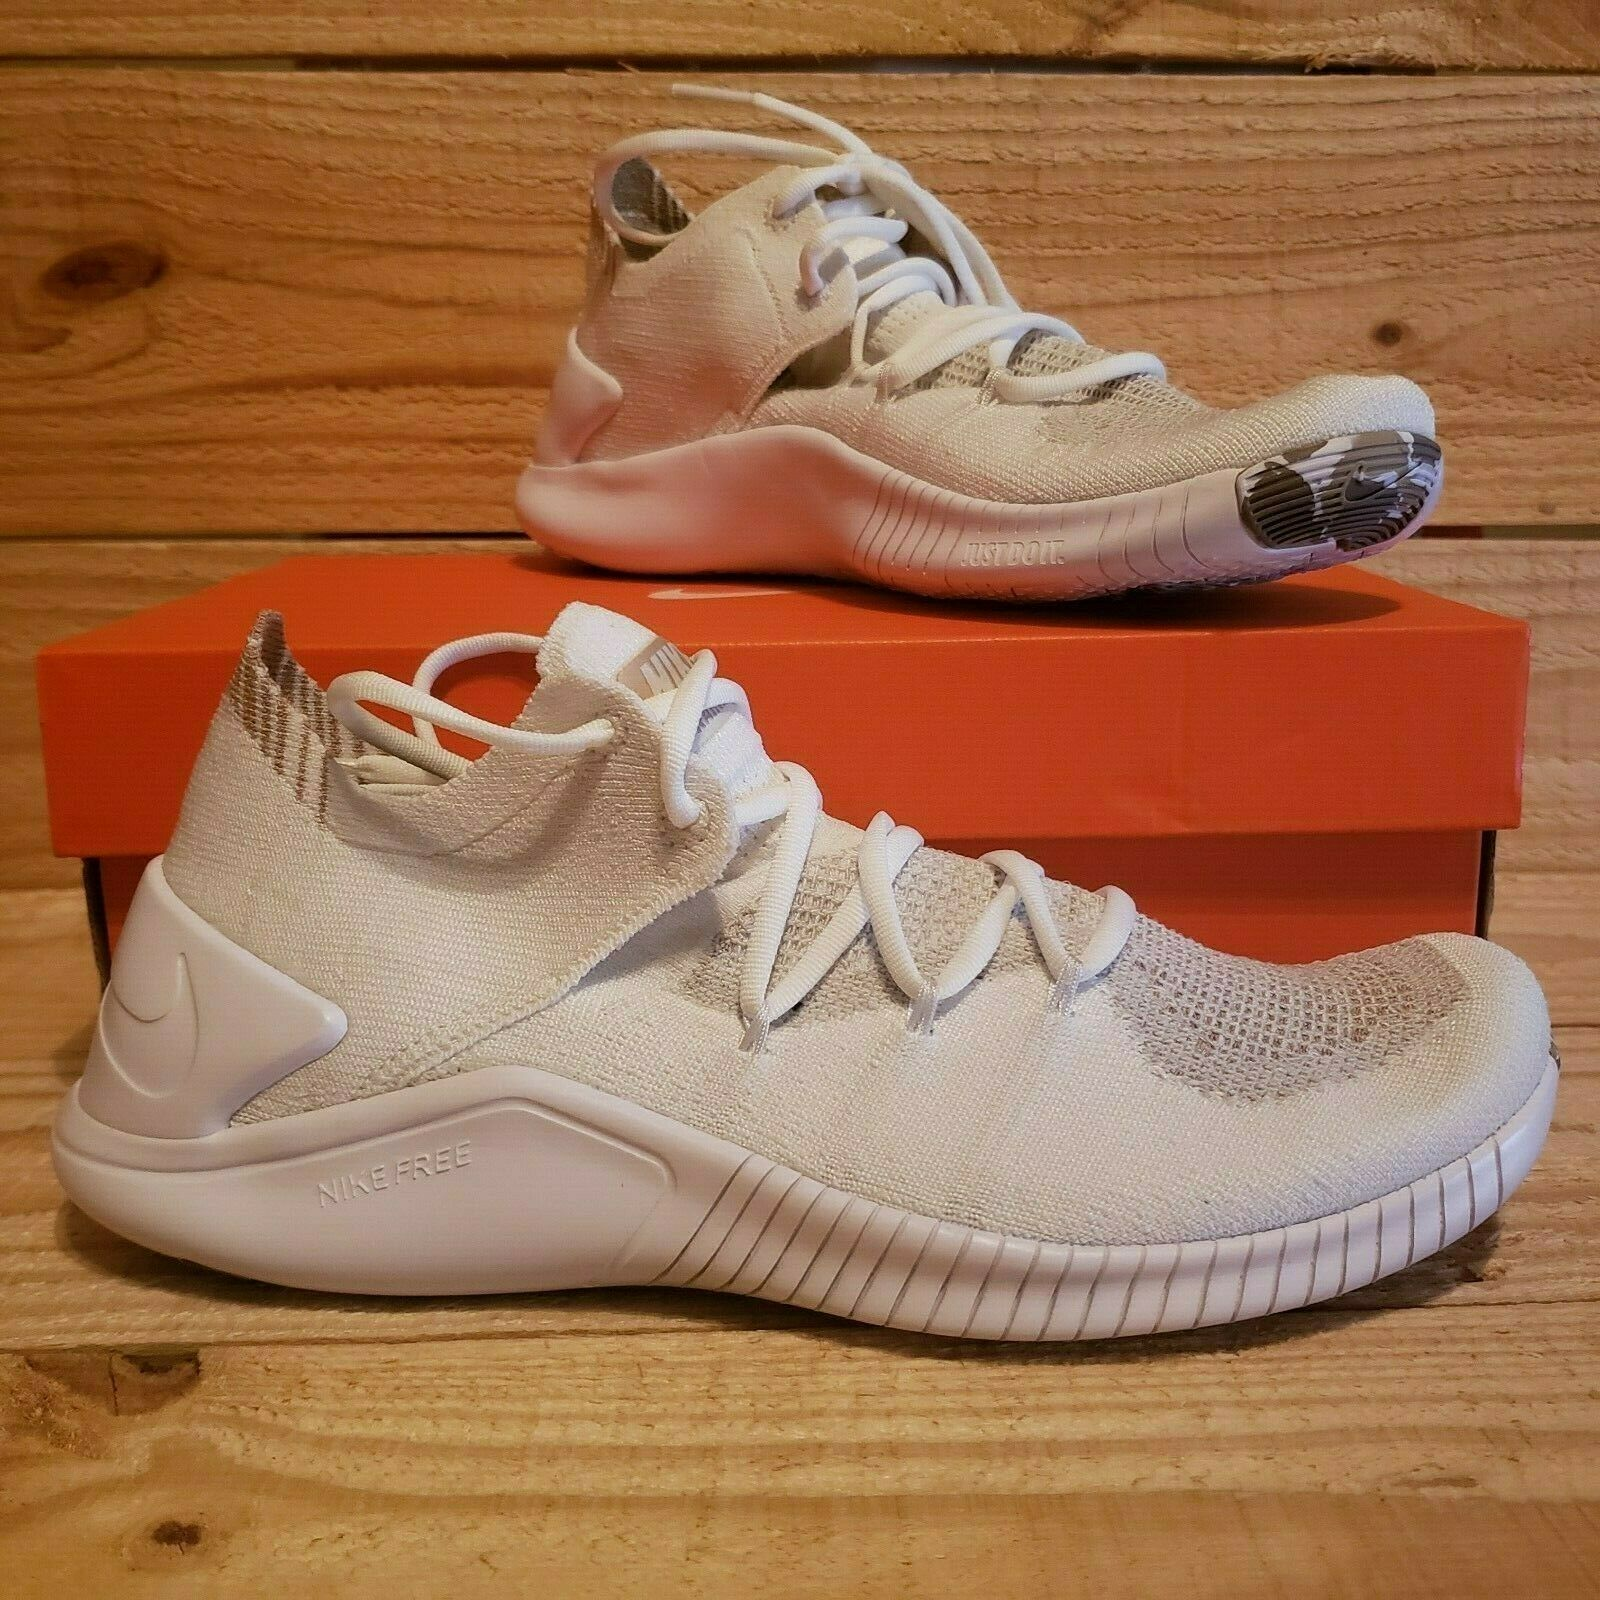 ab4f44e2949ab 57. 57. Previous. Nike Free TR Flyknit 3 Amp S AA1212 100 Women Running Training  Shoes Size White